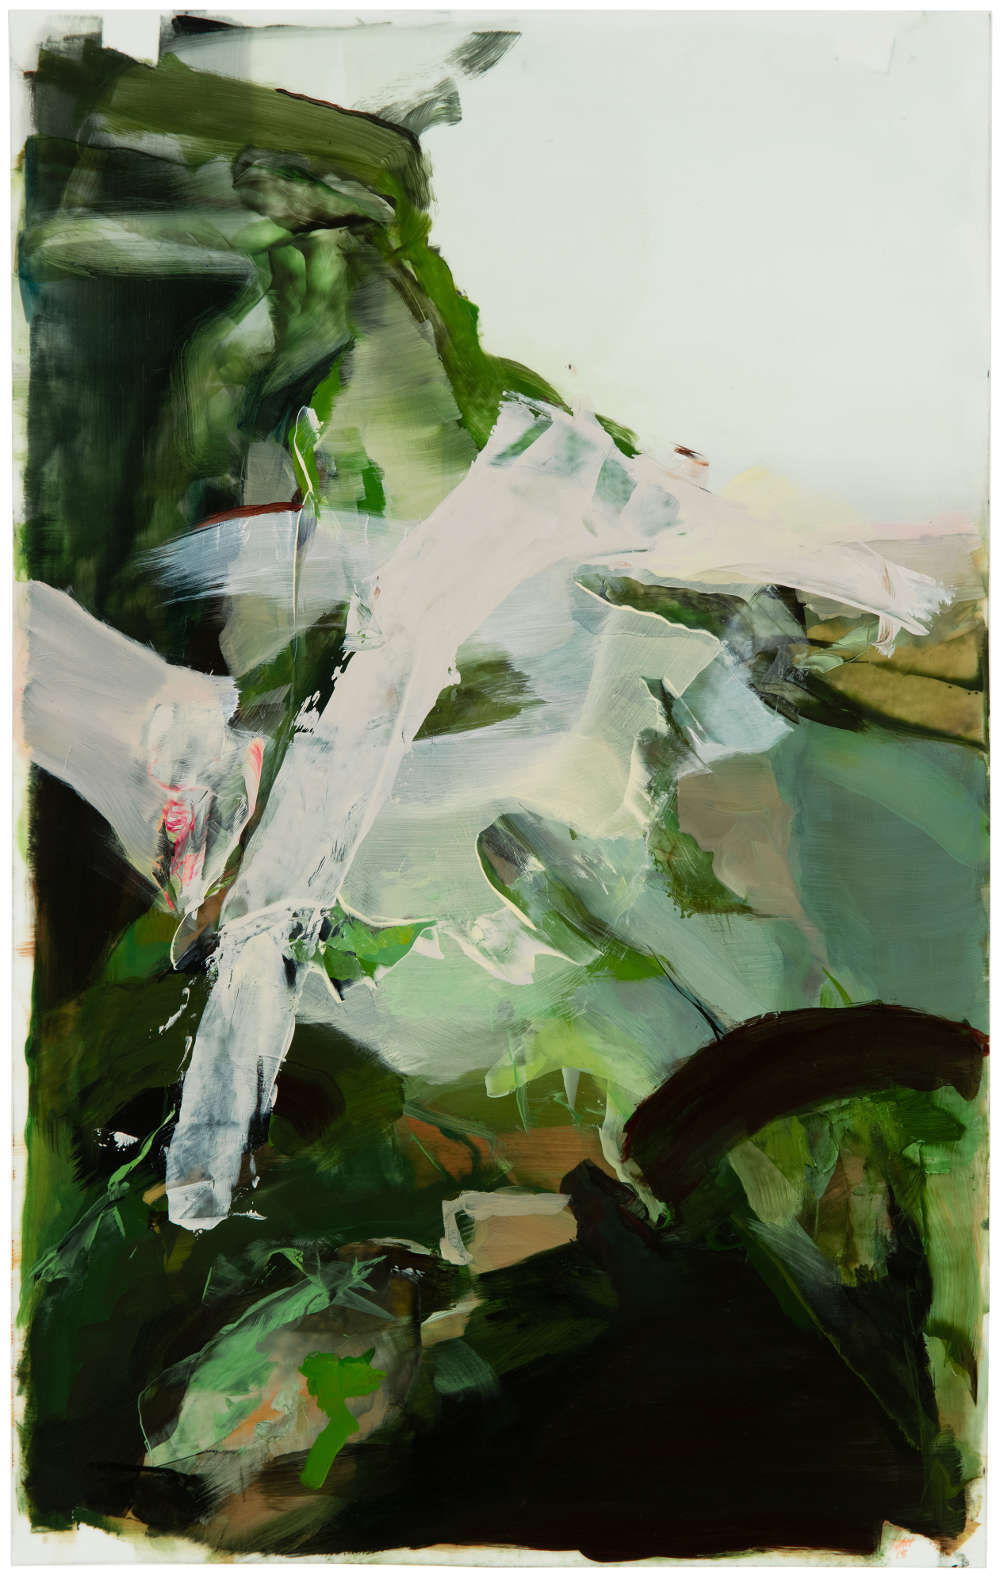 Hollis Heichemer (b. 1963), #2, 2018. Initialed and dated lower right: HAH / 18. Oil on Mylar 19 x 12 inches